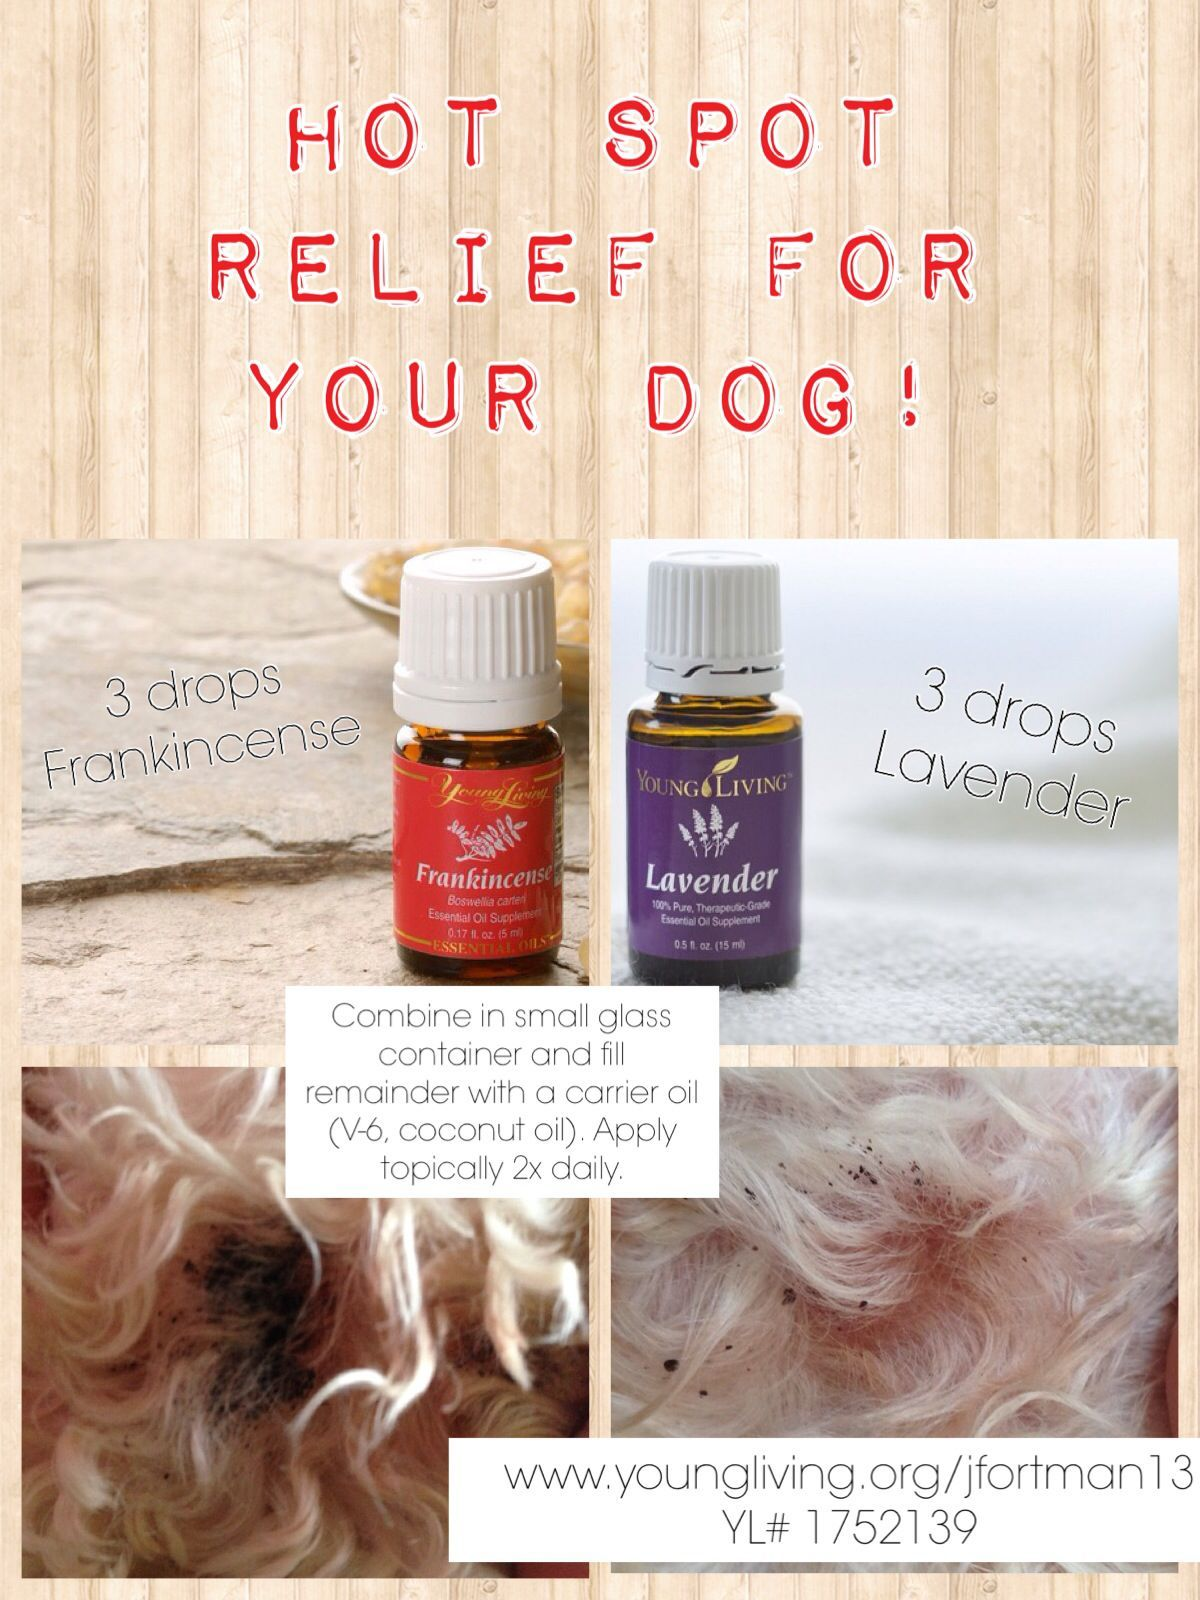 Pin By Erin Lyon On Oils Essential Oils Dogs Oils For Dogs Doterra Essential Oils